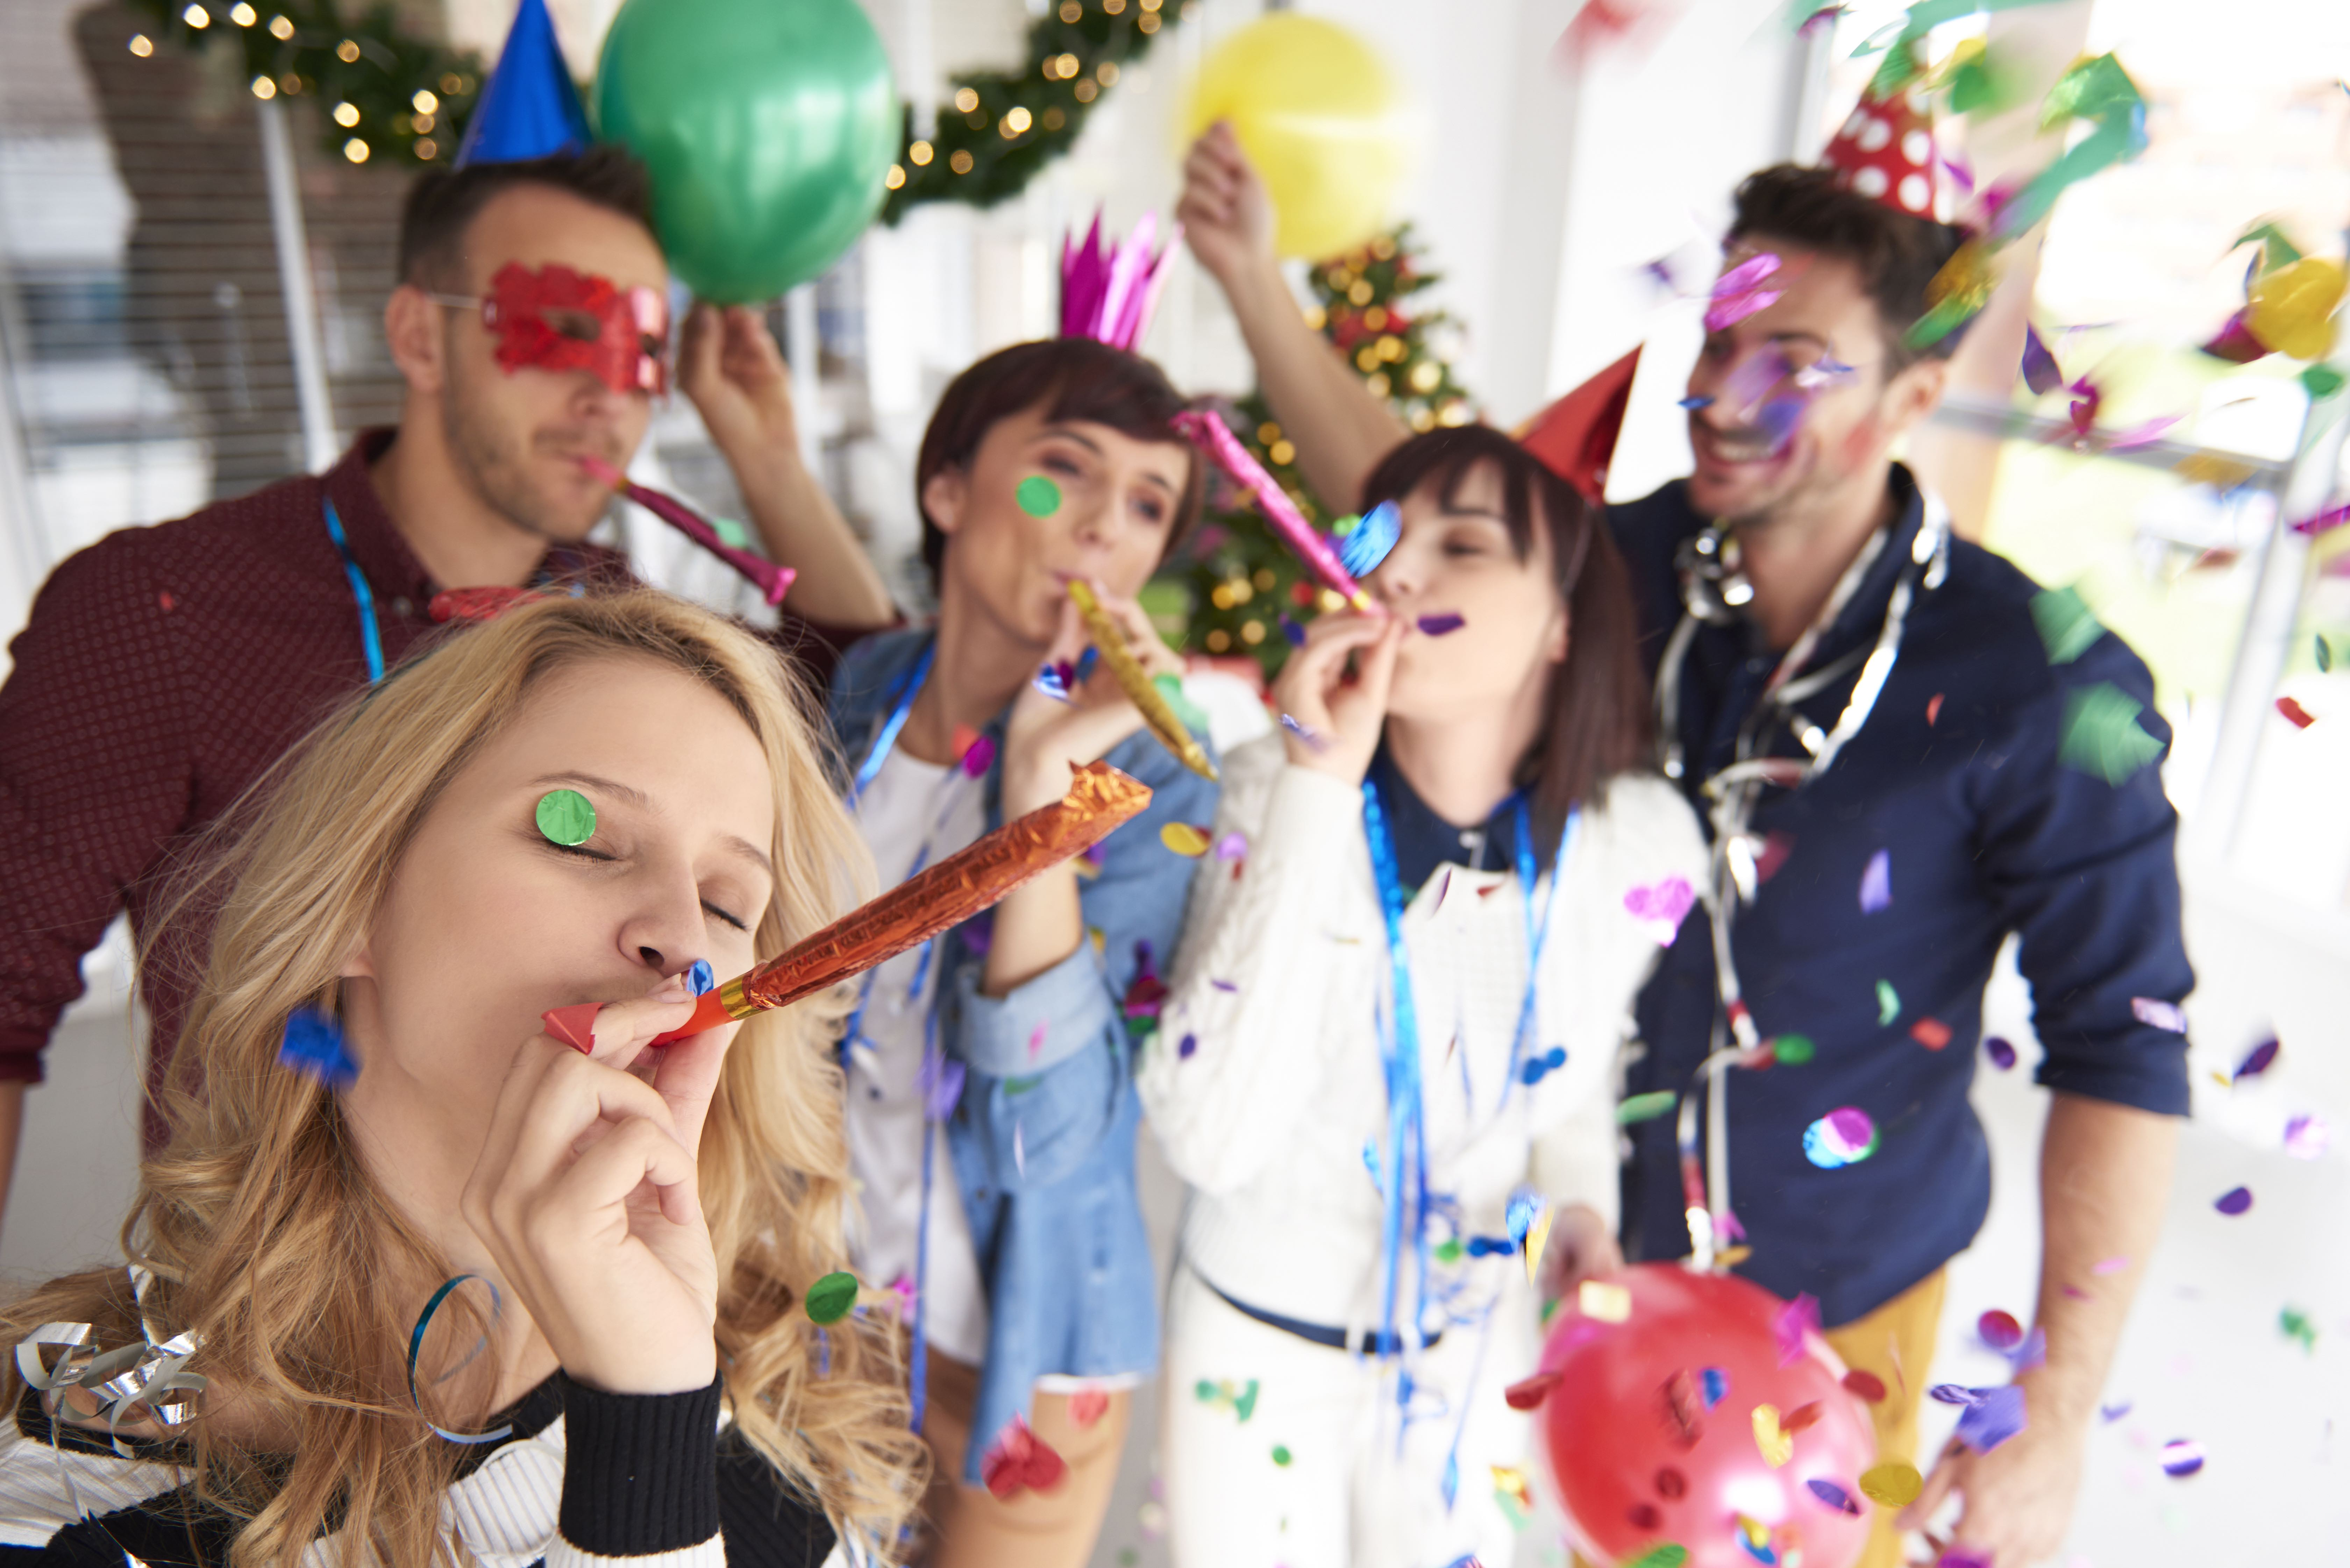 How to Throw an Awesome Office Party